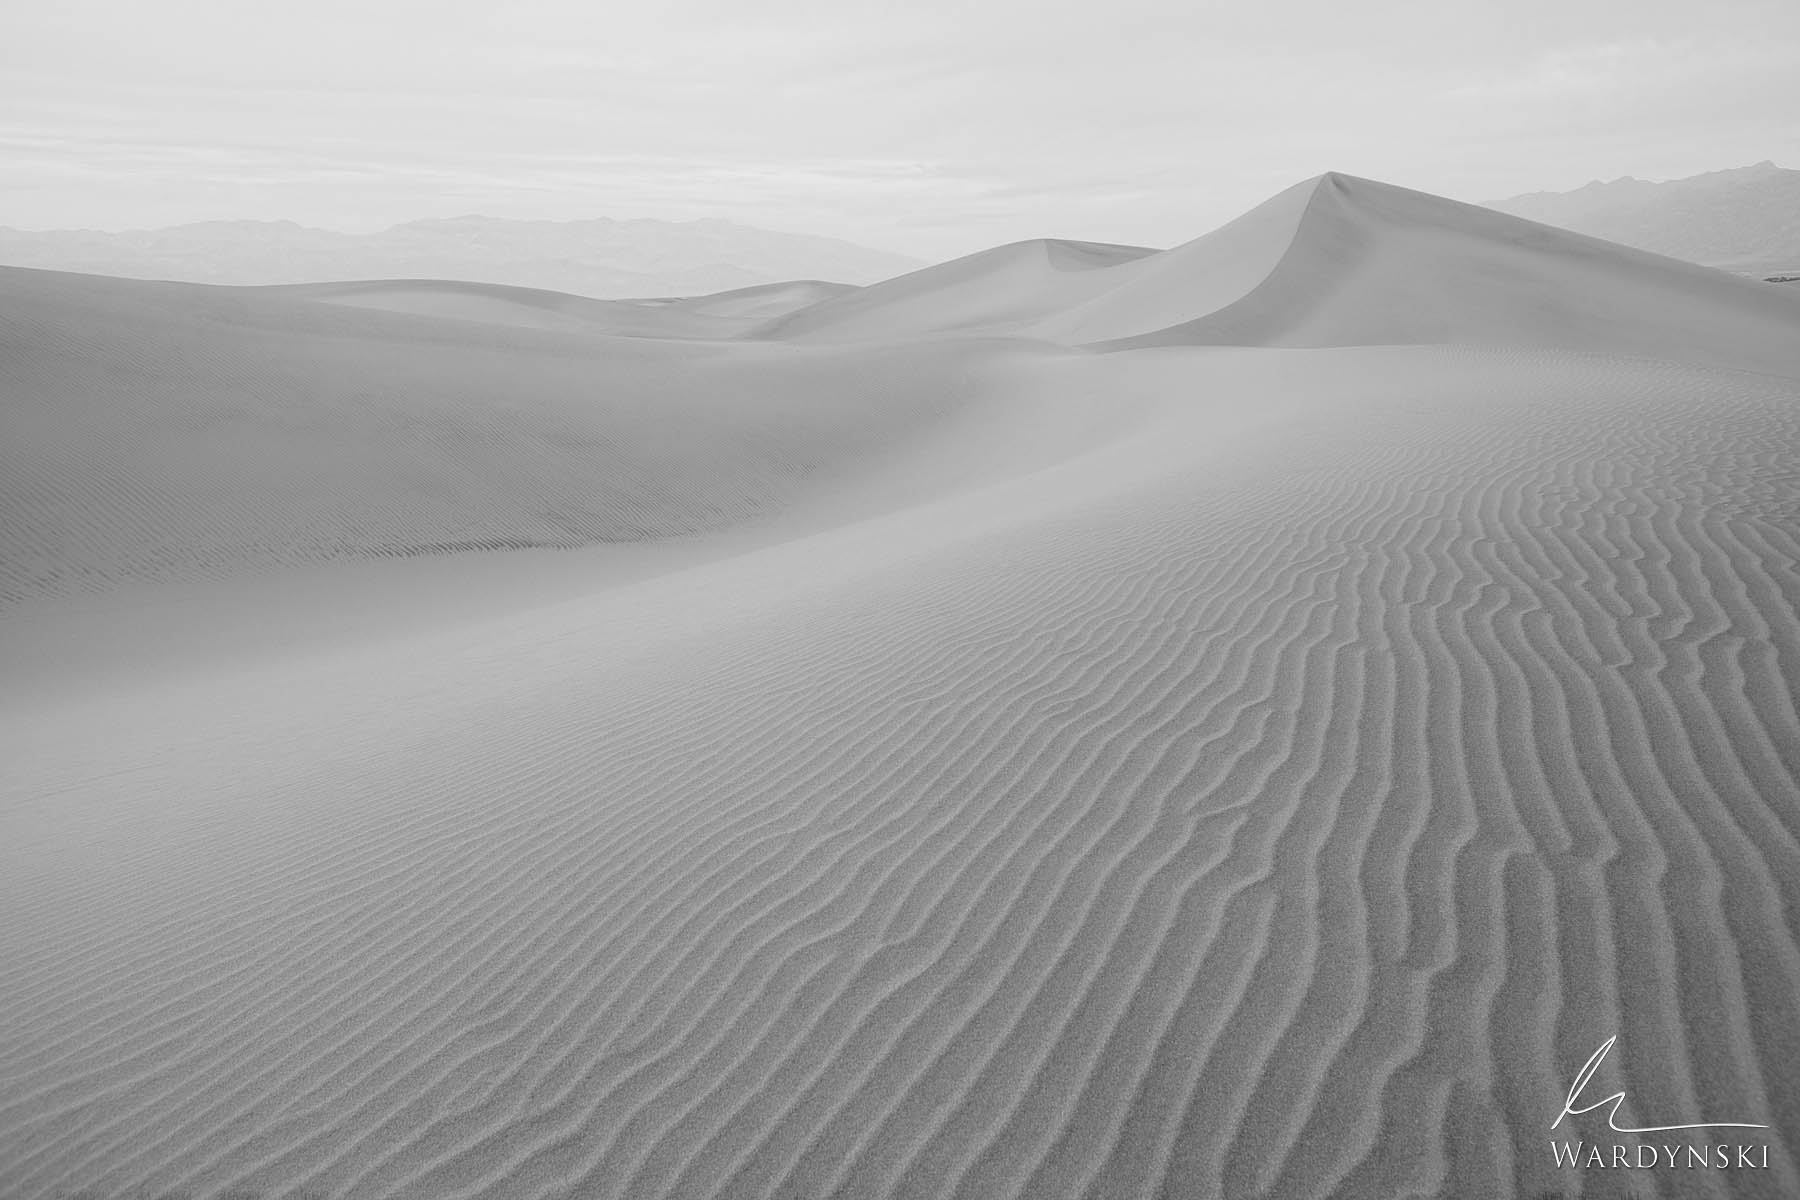 Black And White Fine Art Print   Limited Edition of 25  Wonderfully soft light falls on the soft sands of Mesquite Dunes in Death...